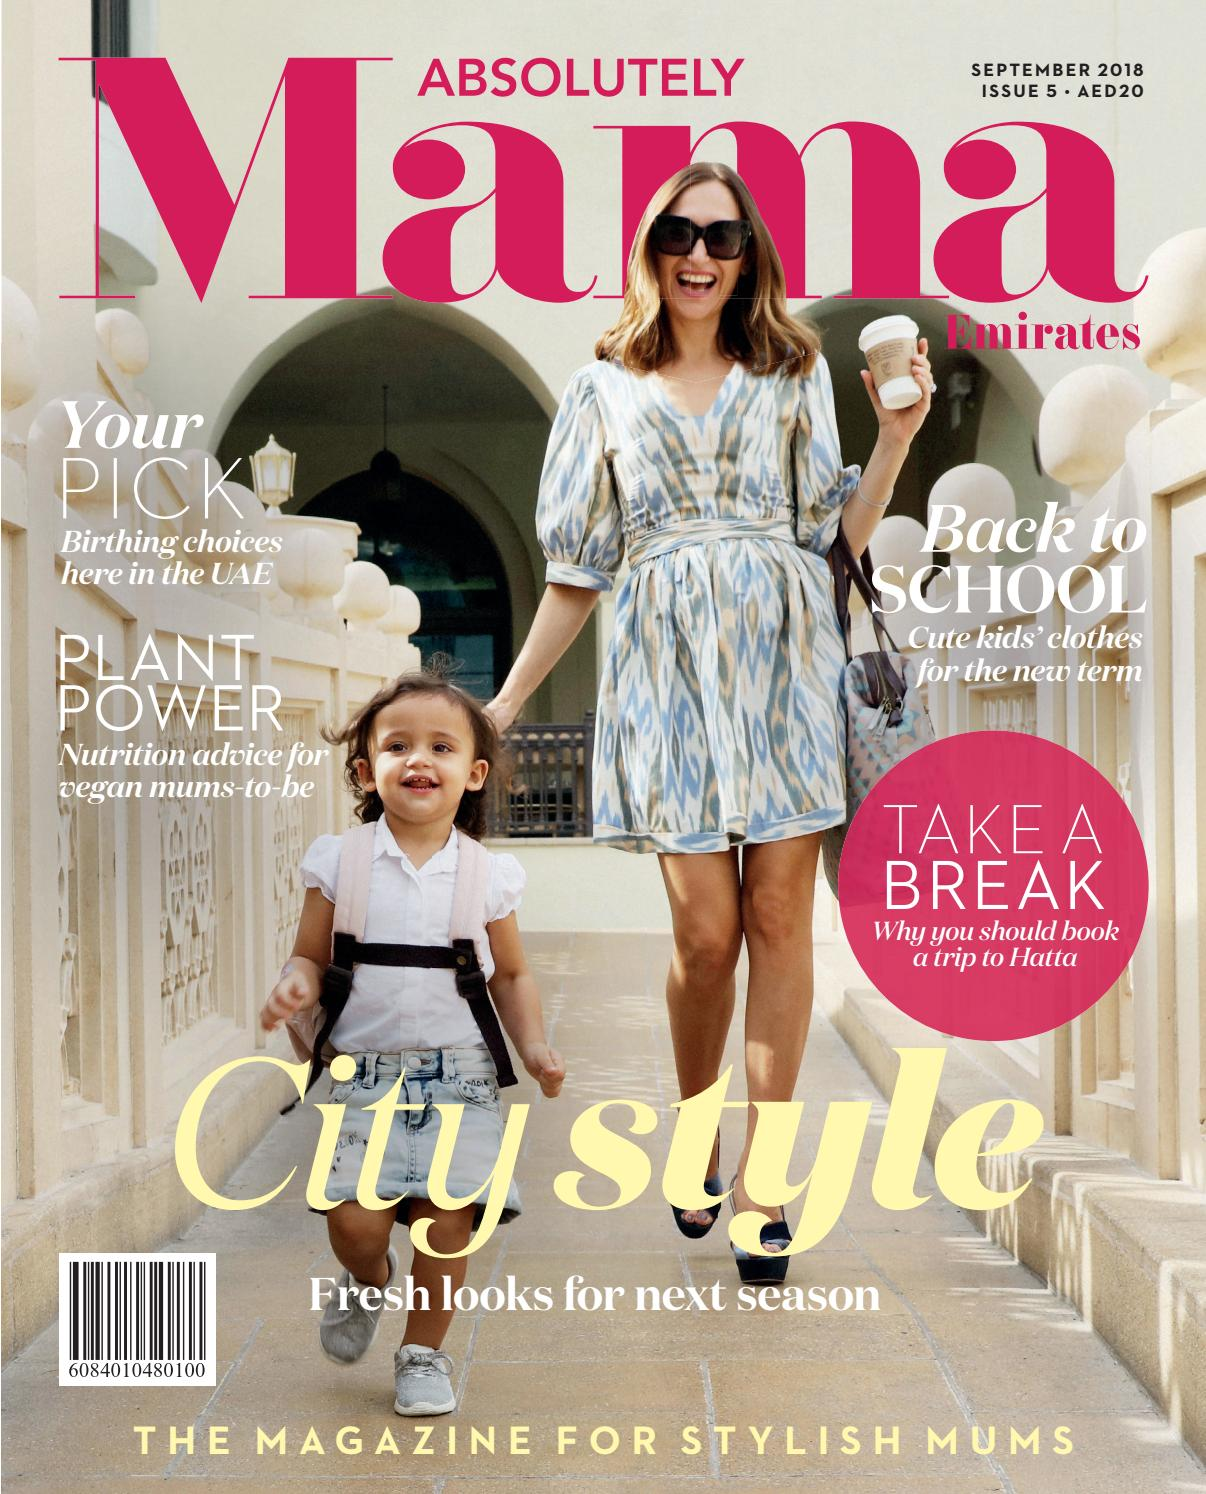 d09acf105dc1 Absolutely Mama Emirates September 2018 by Zest Media London - issuu